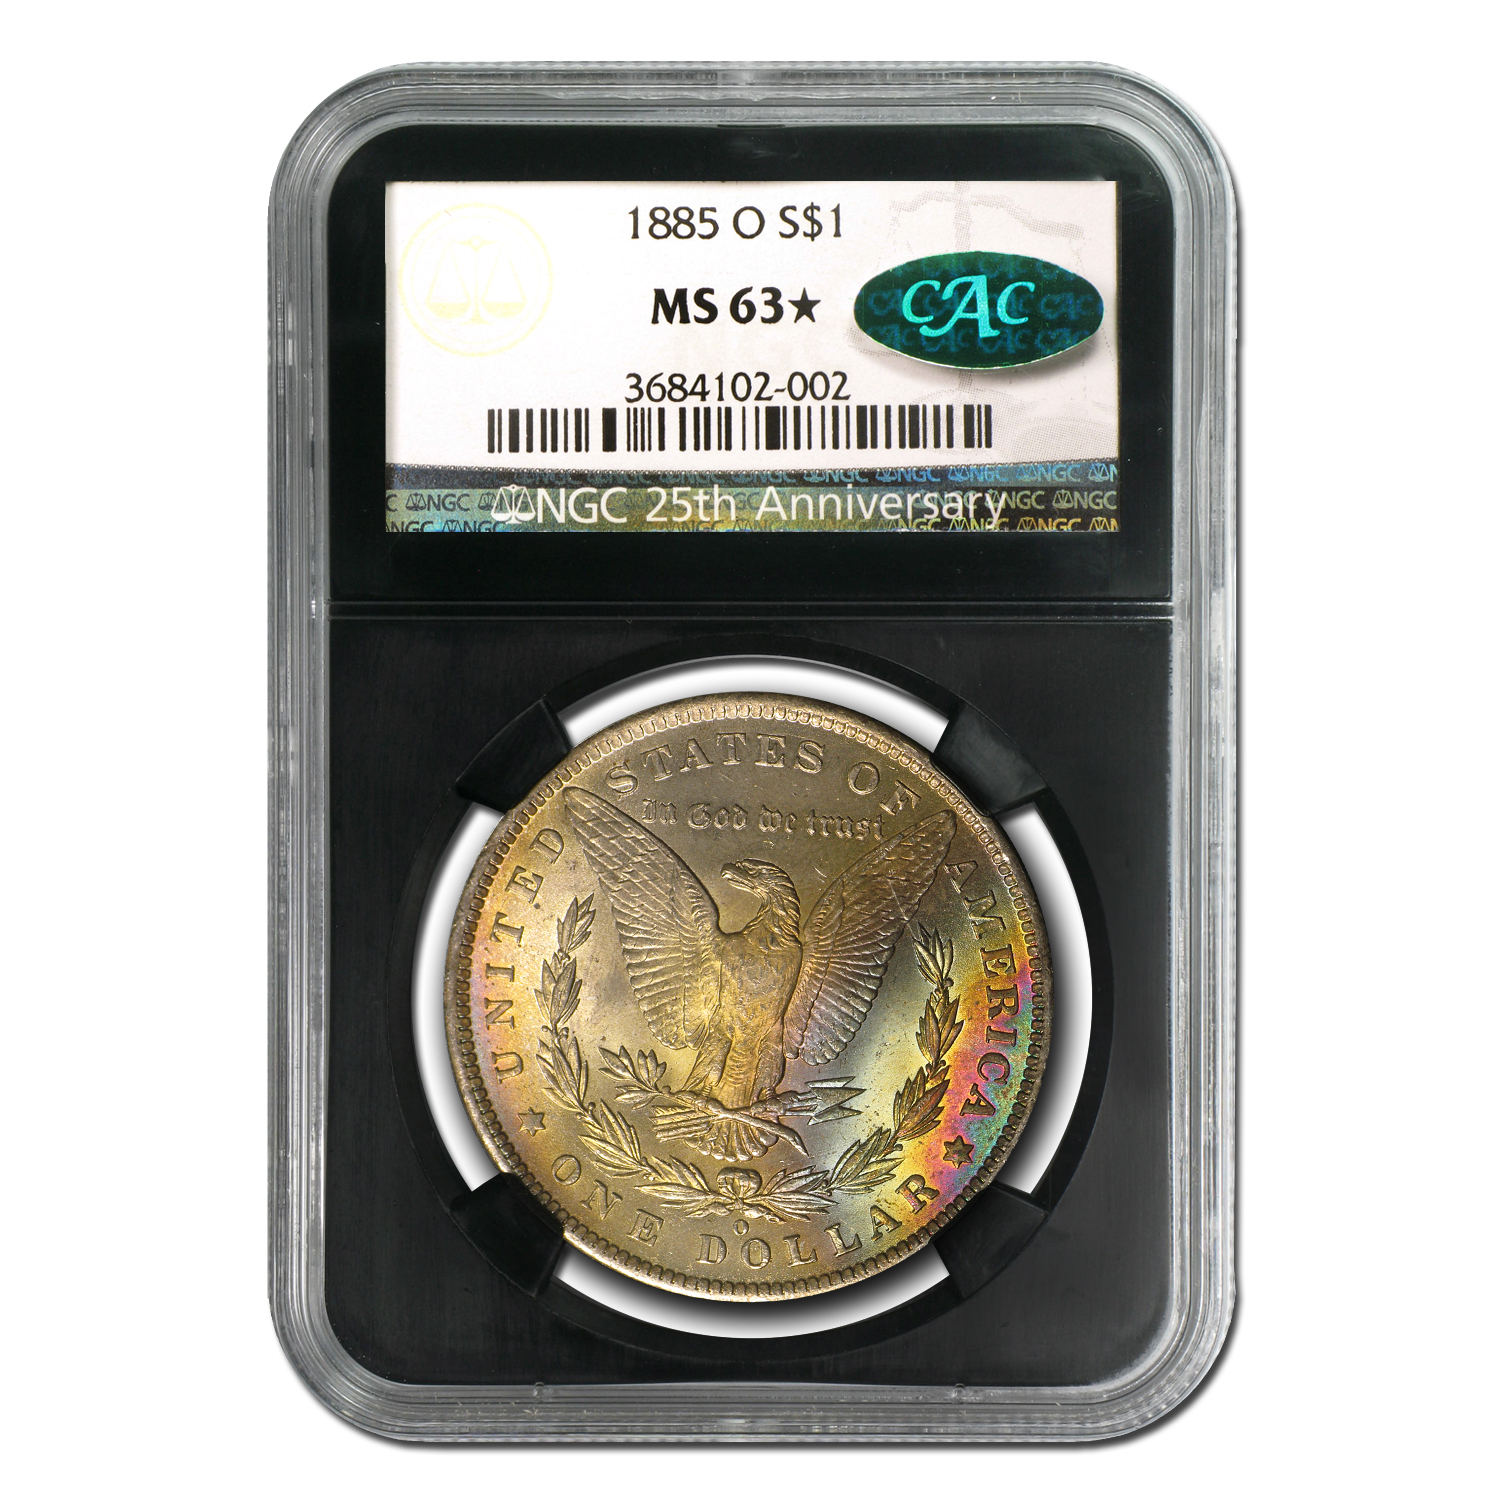 1885-O Morgan Dollar MS-63* Star NGC (Rainbow Rev, CAC)